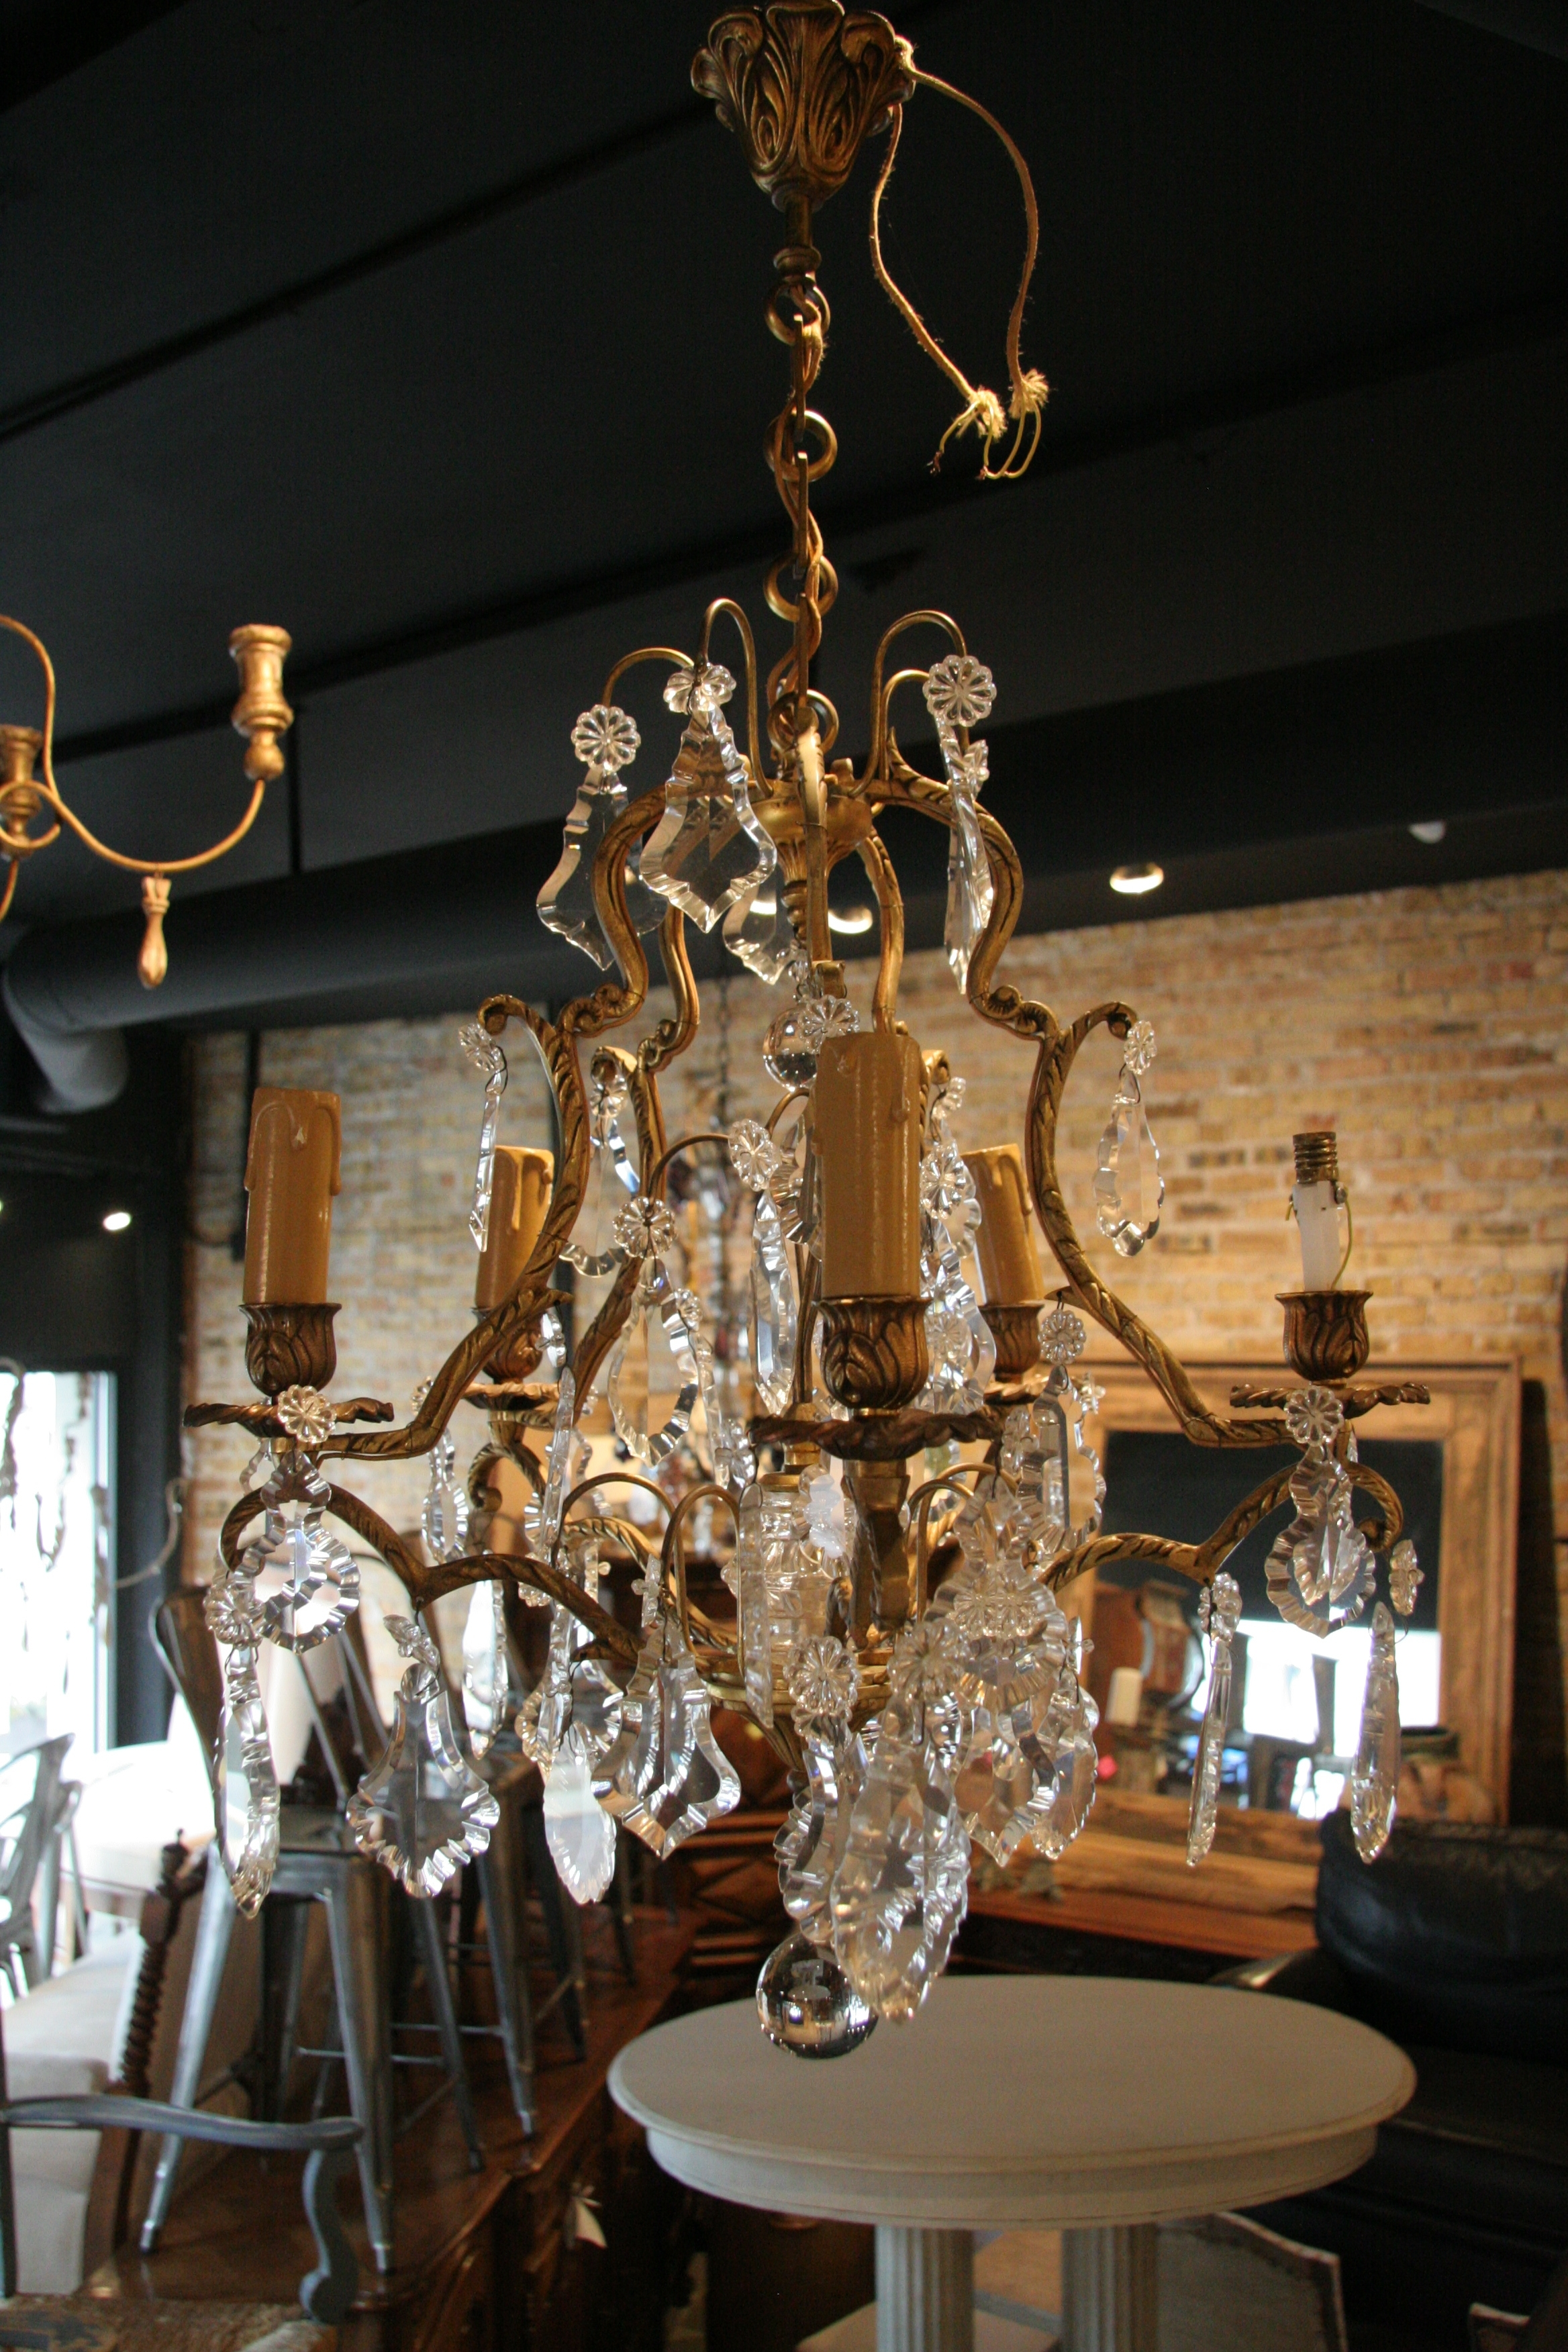 Antique French 5 Light Brass And Crystal Chandelier – Sold – Intended For Popular French Antique Chandeliers (View 2 of 20)